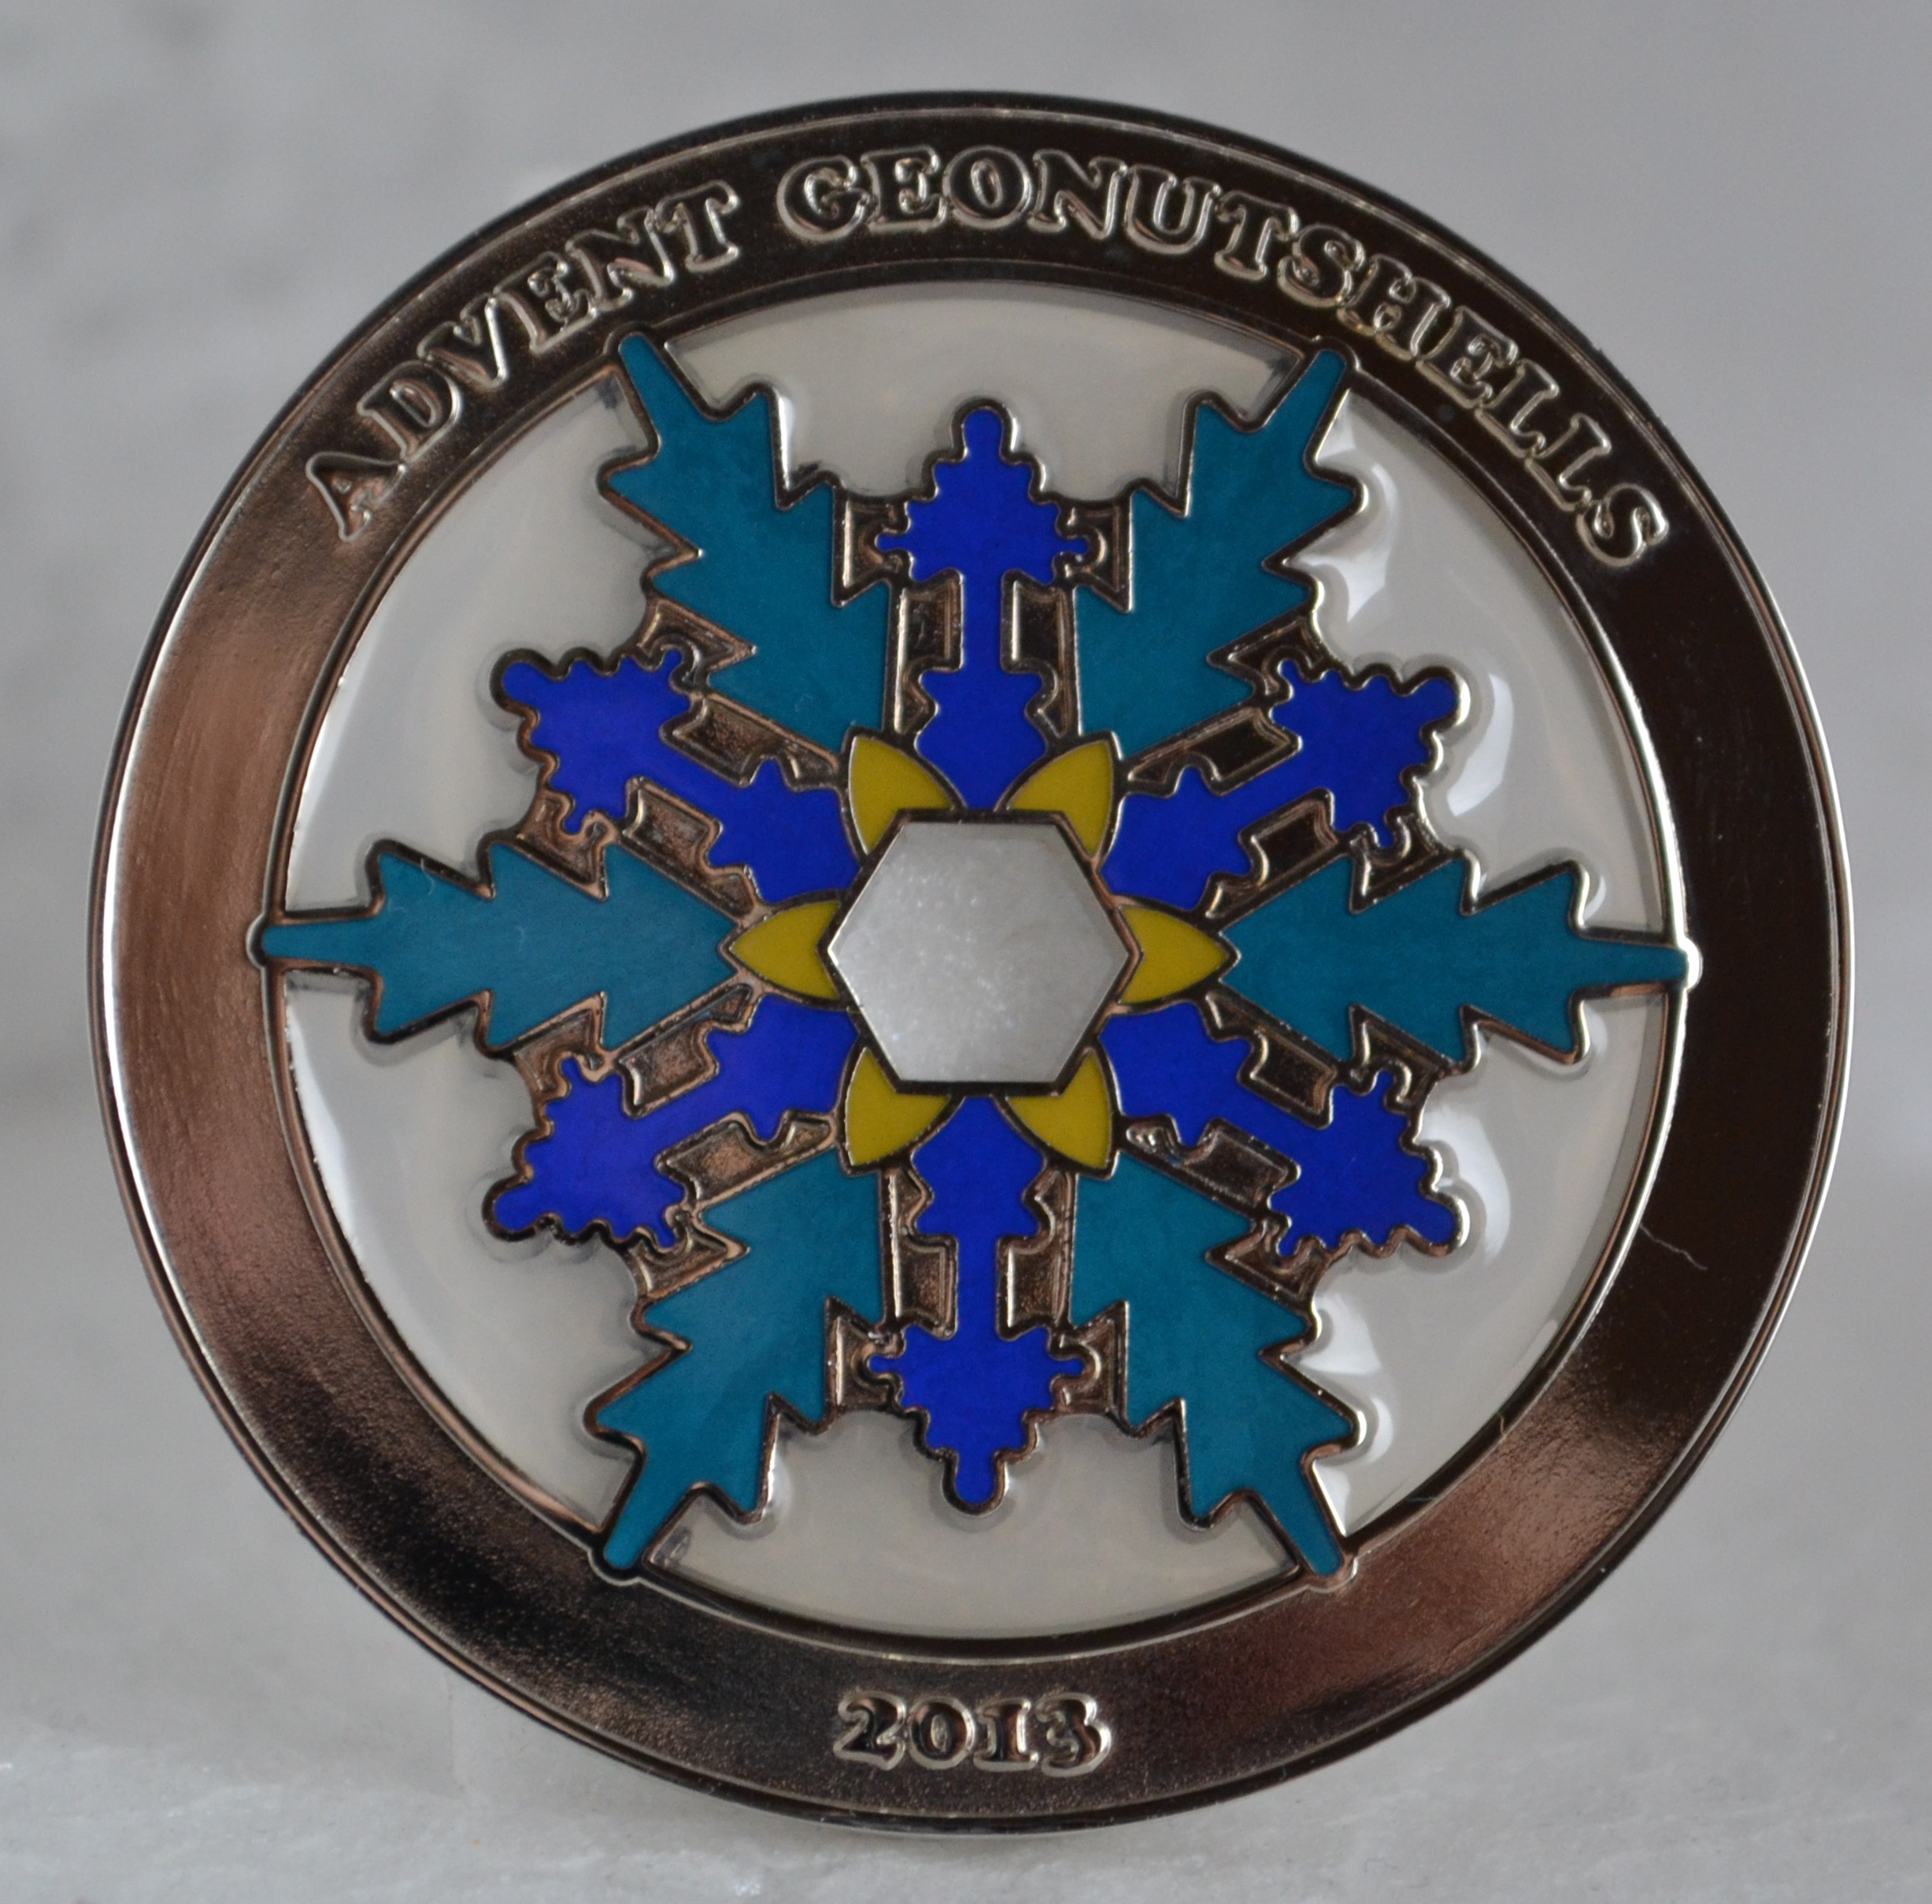 Advent Geonutshells 2013 Geocoin XLE